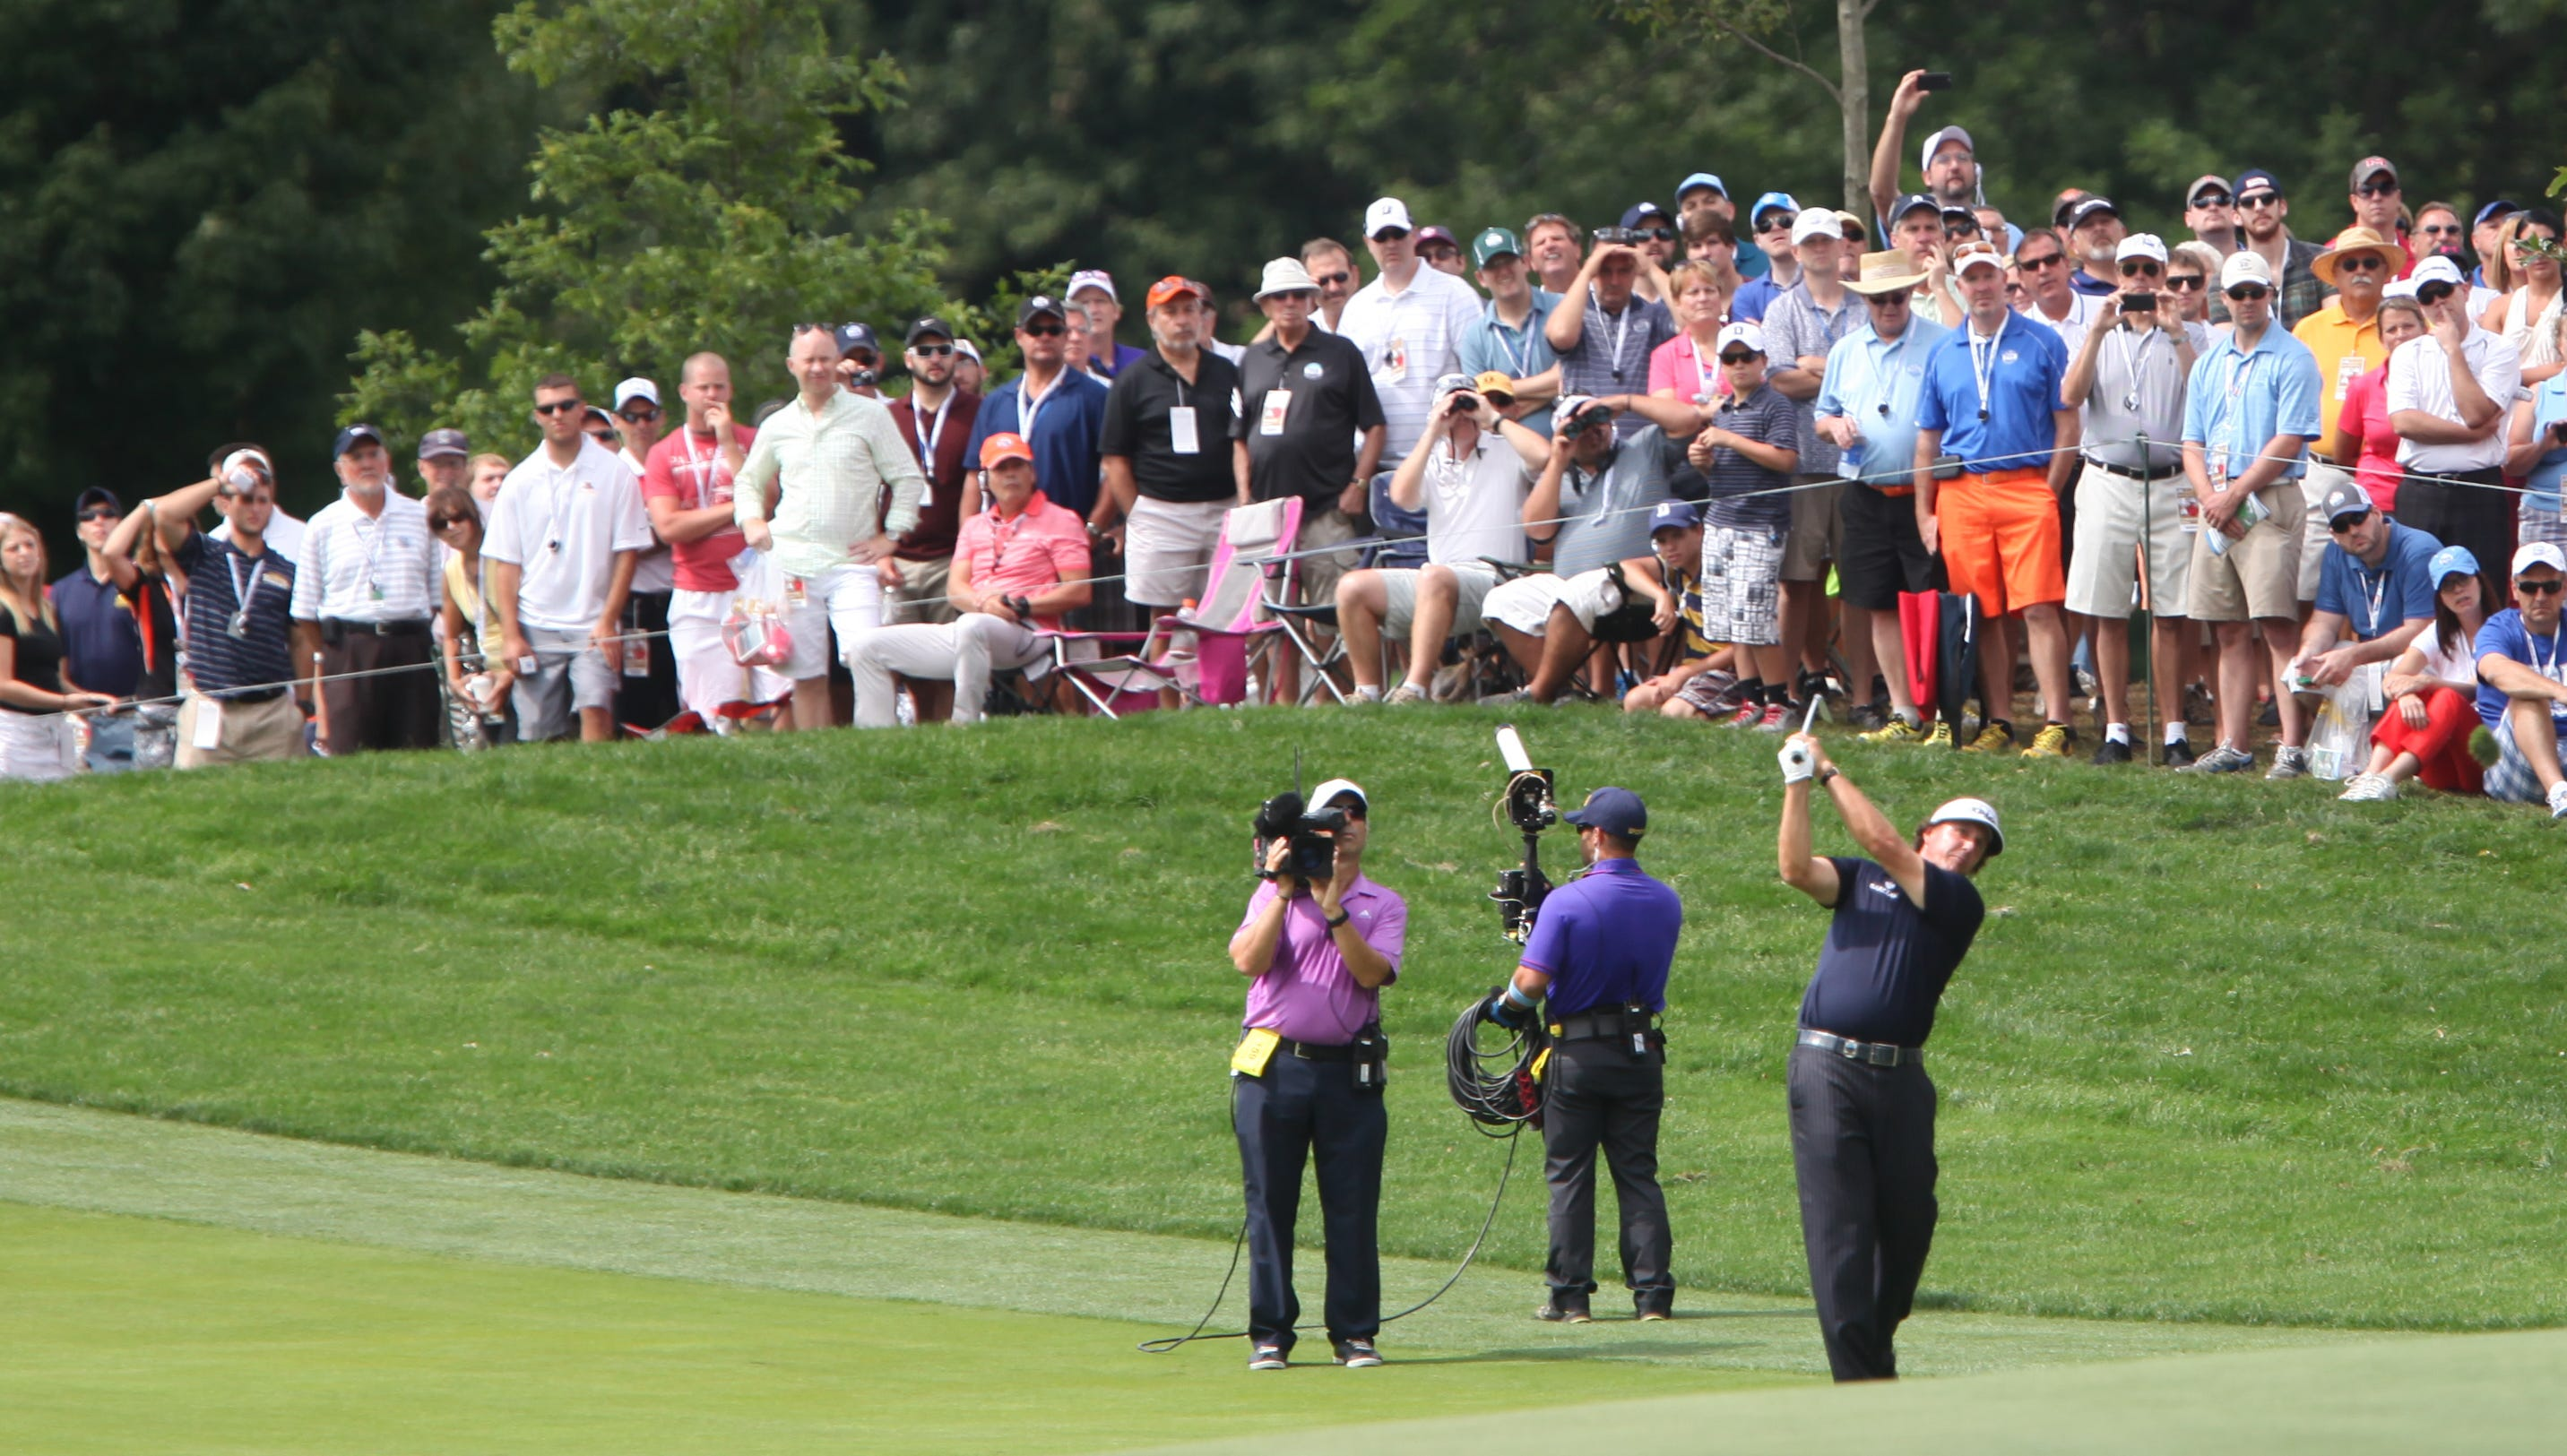 The gallery along 18 was already packed as Phil Mickelson shoots from the fairway before 11:30 a.m. Sunday morning.